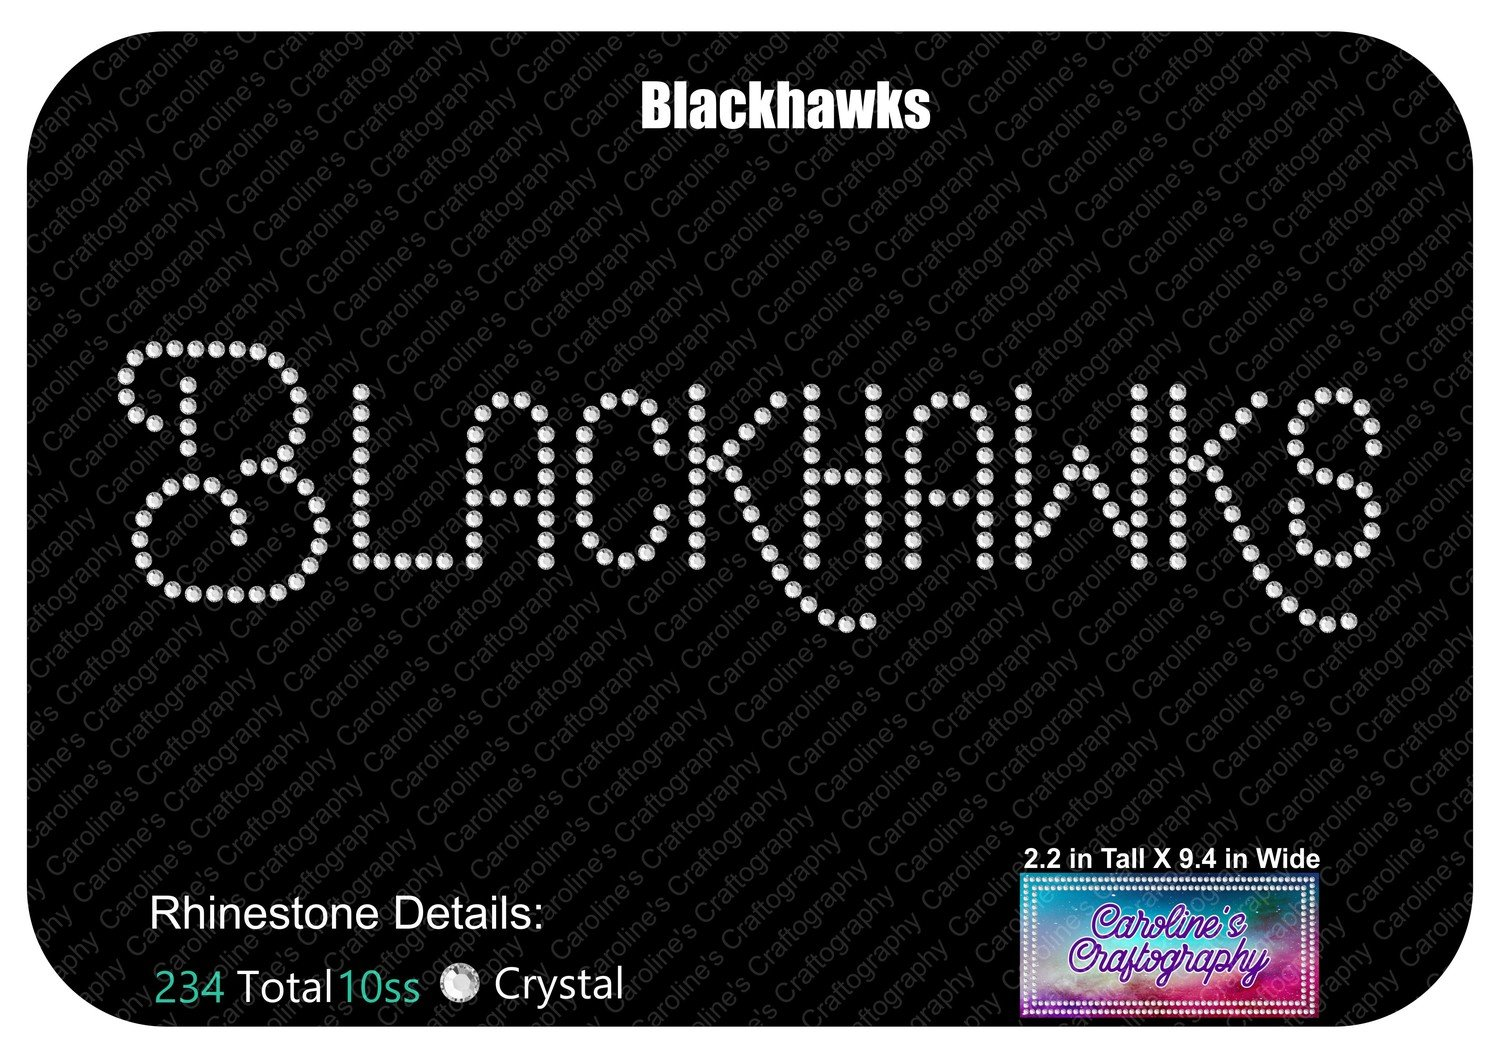 Blackhawks Mascot Name Stone